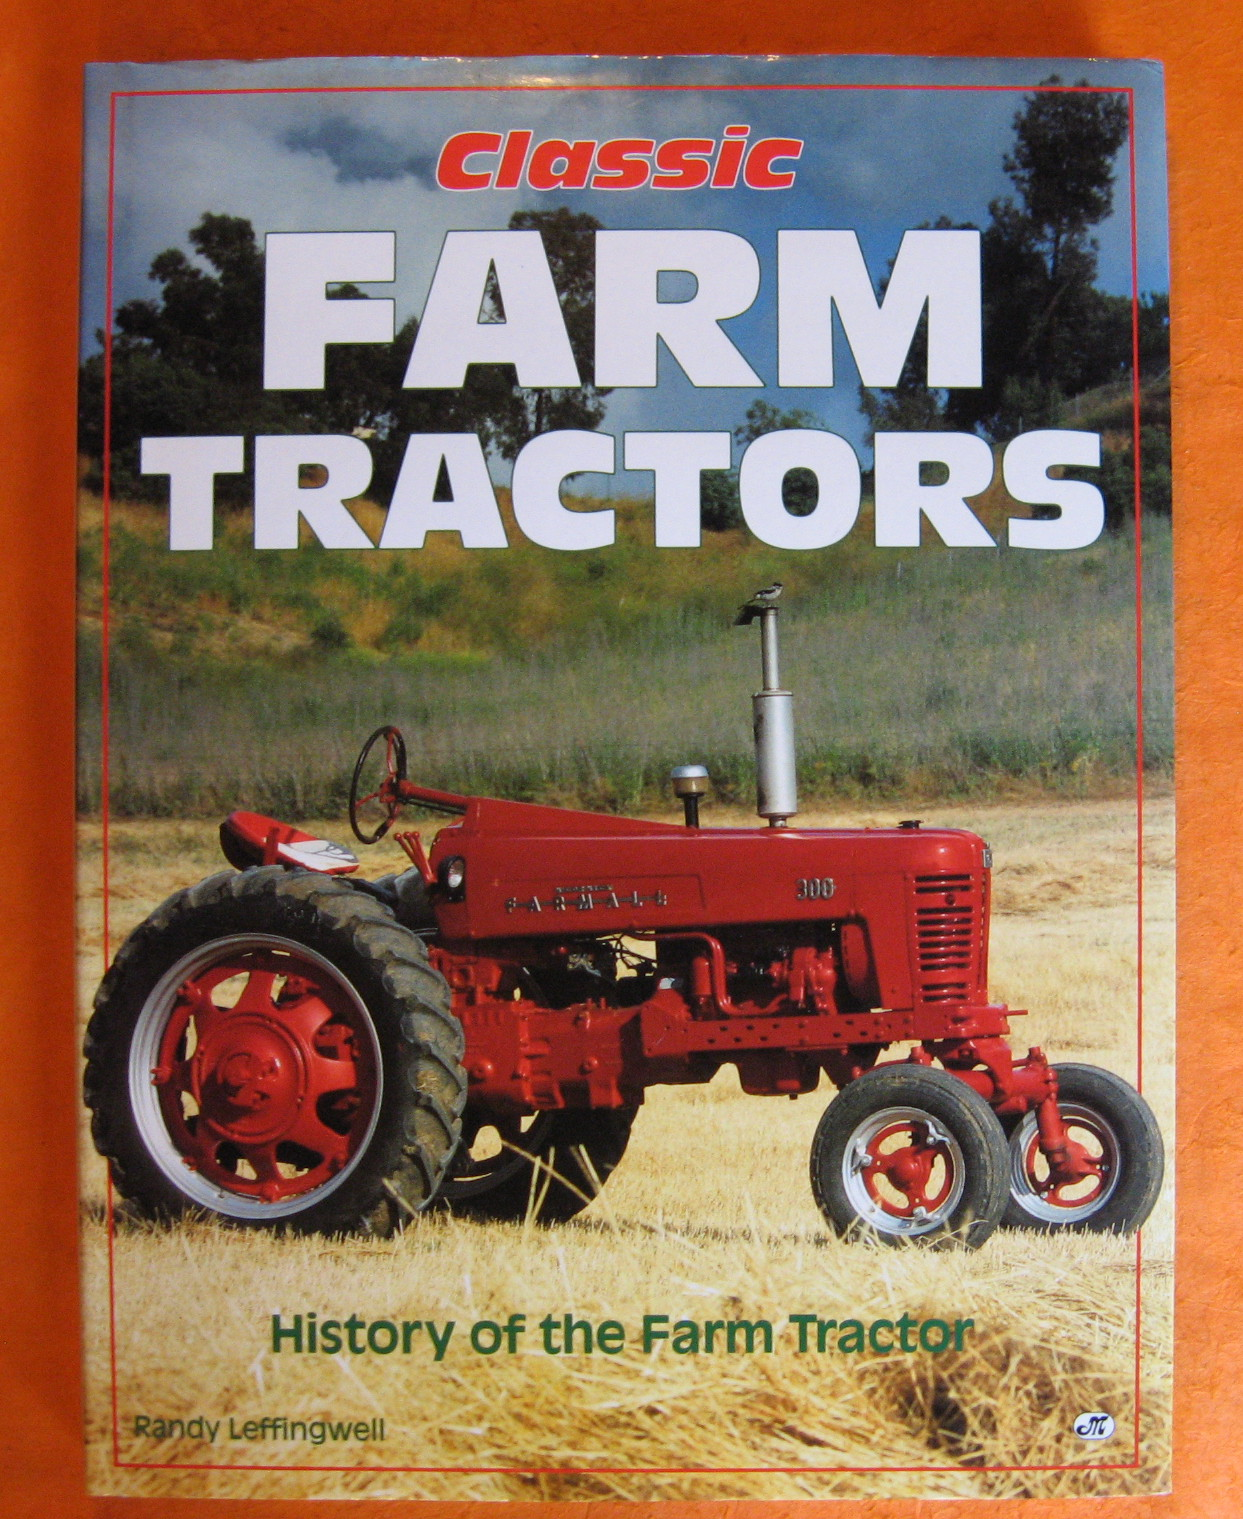 Classic Farm Tractors: History of the Farm Tractor, Leffingwell, Randy